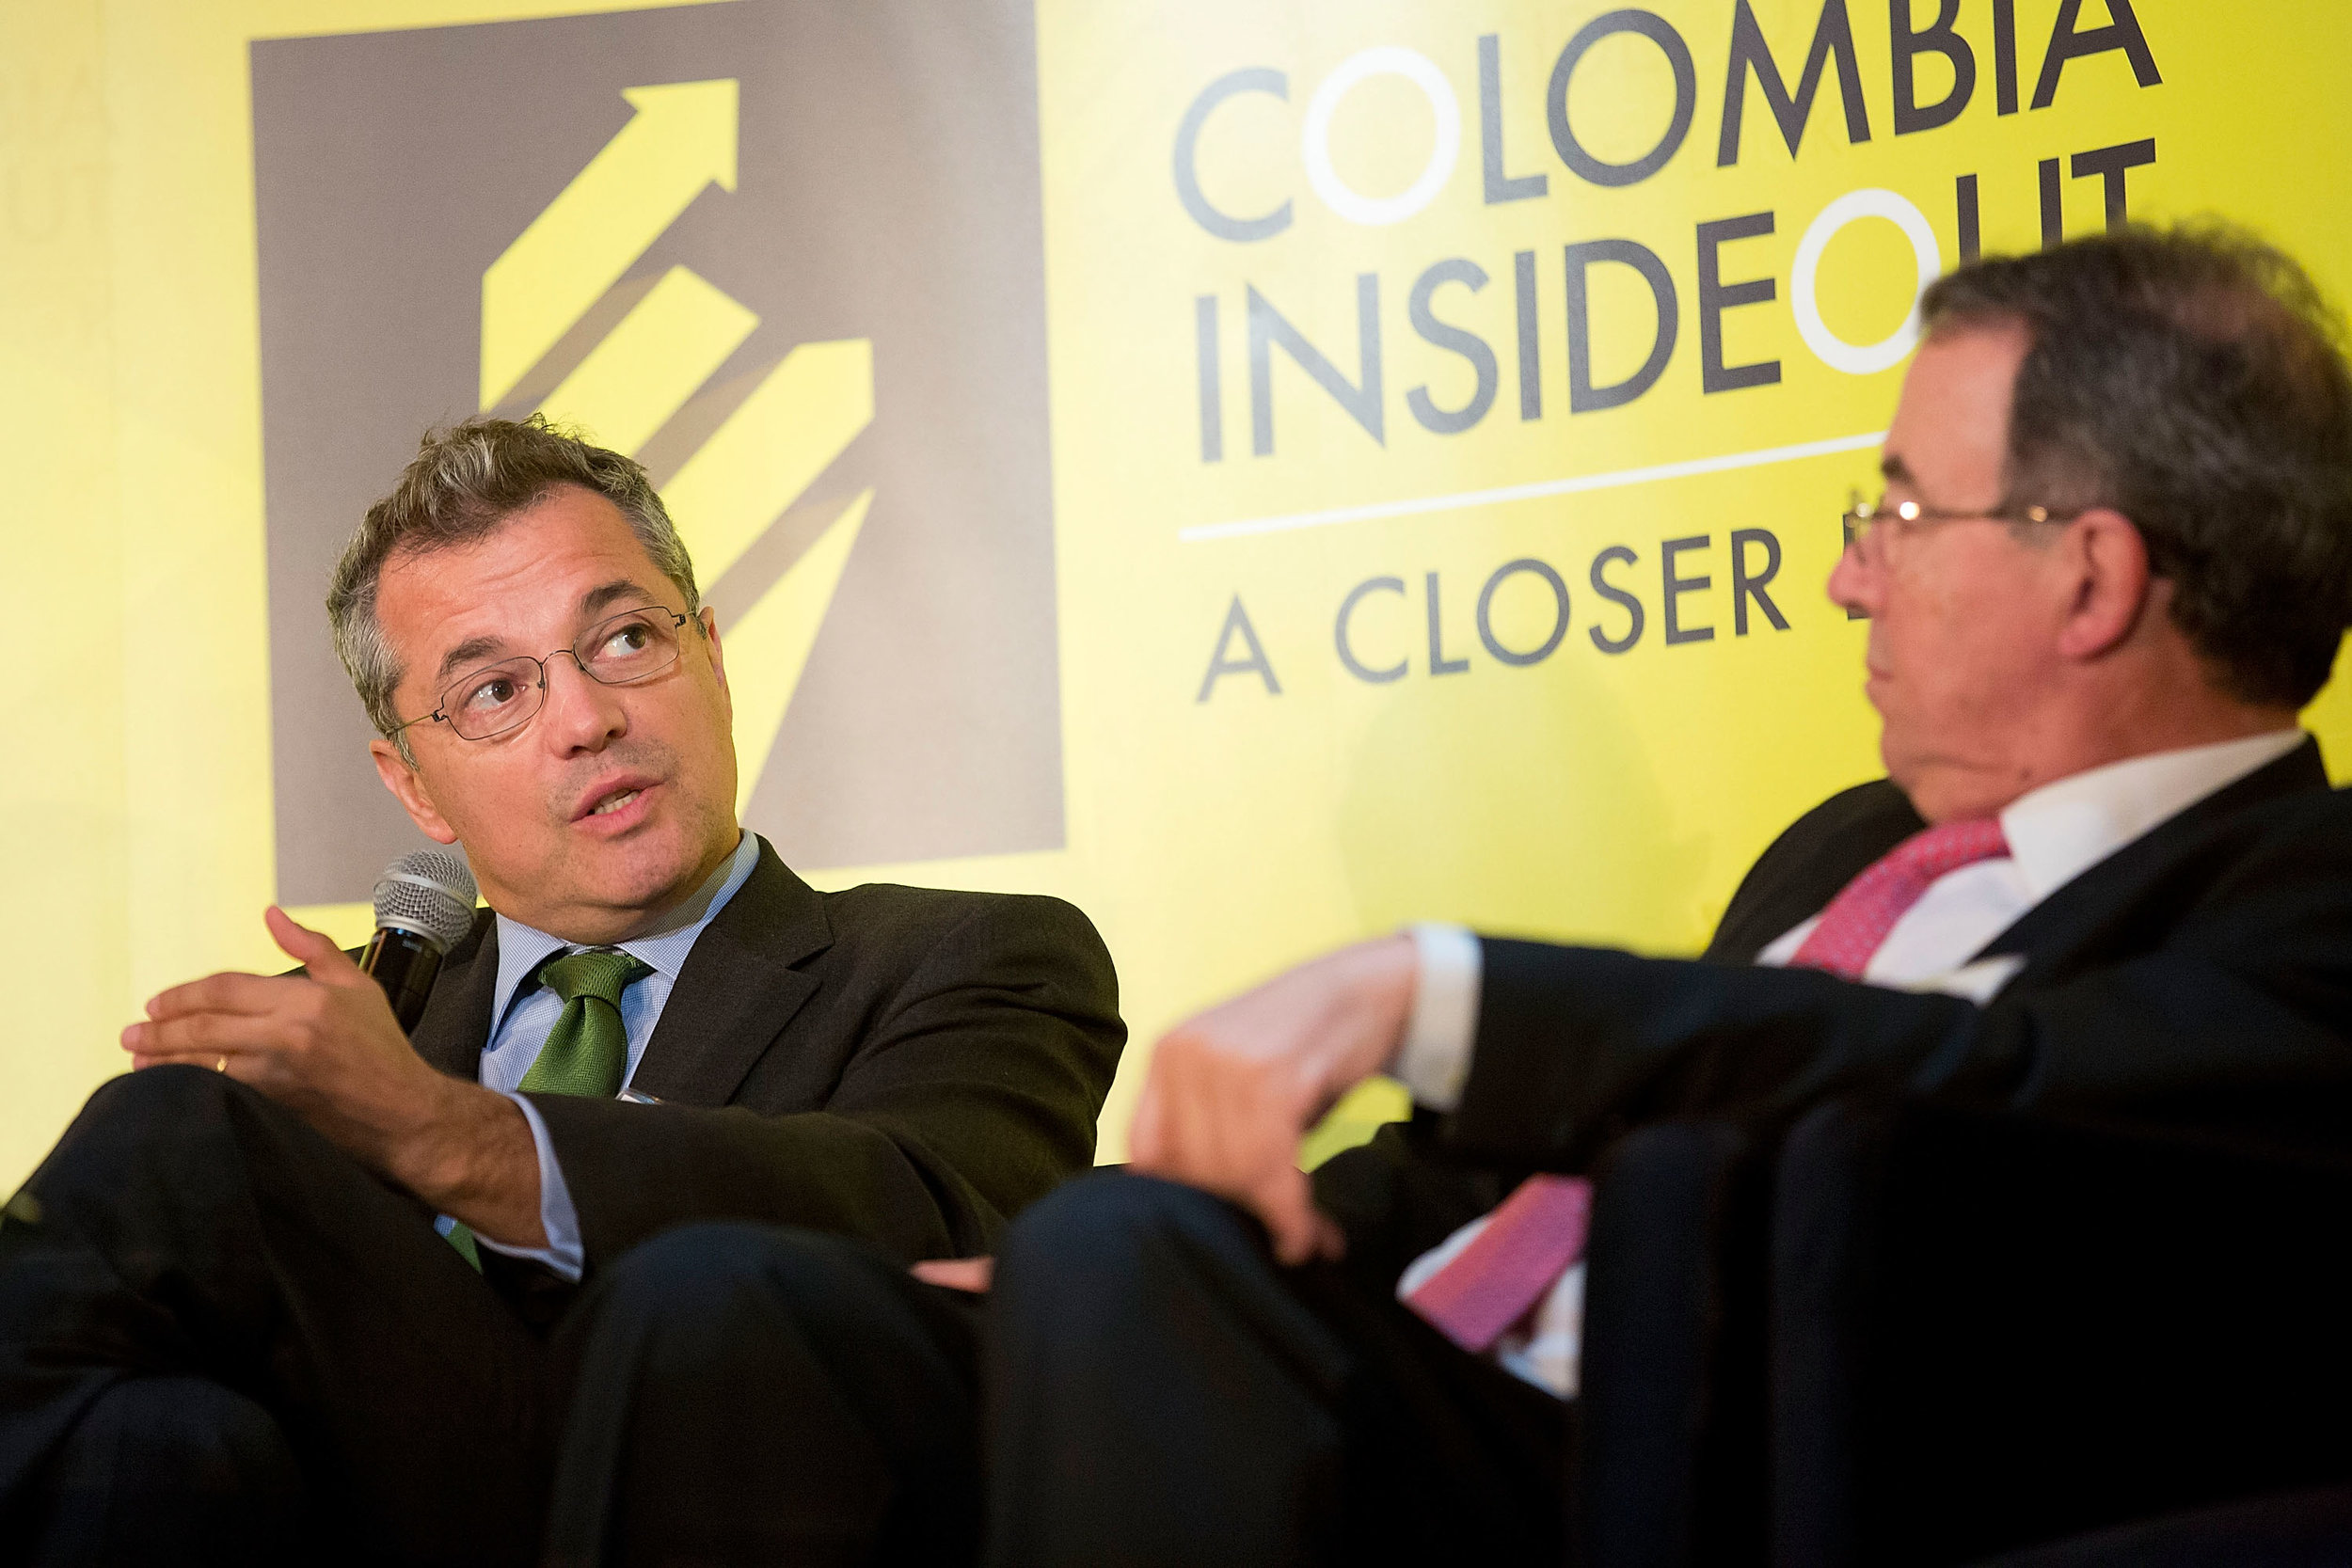 Colombia Inside Out